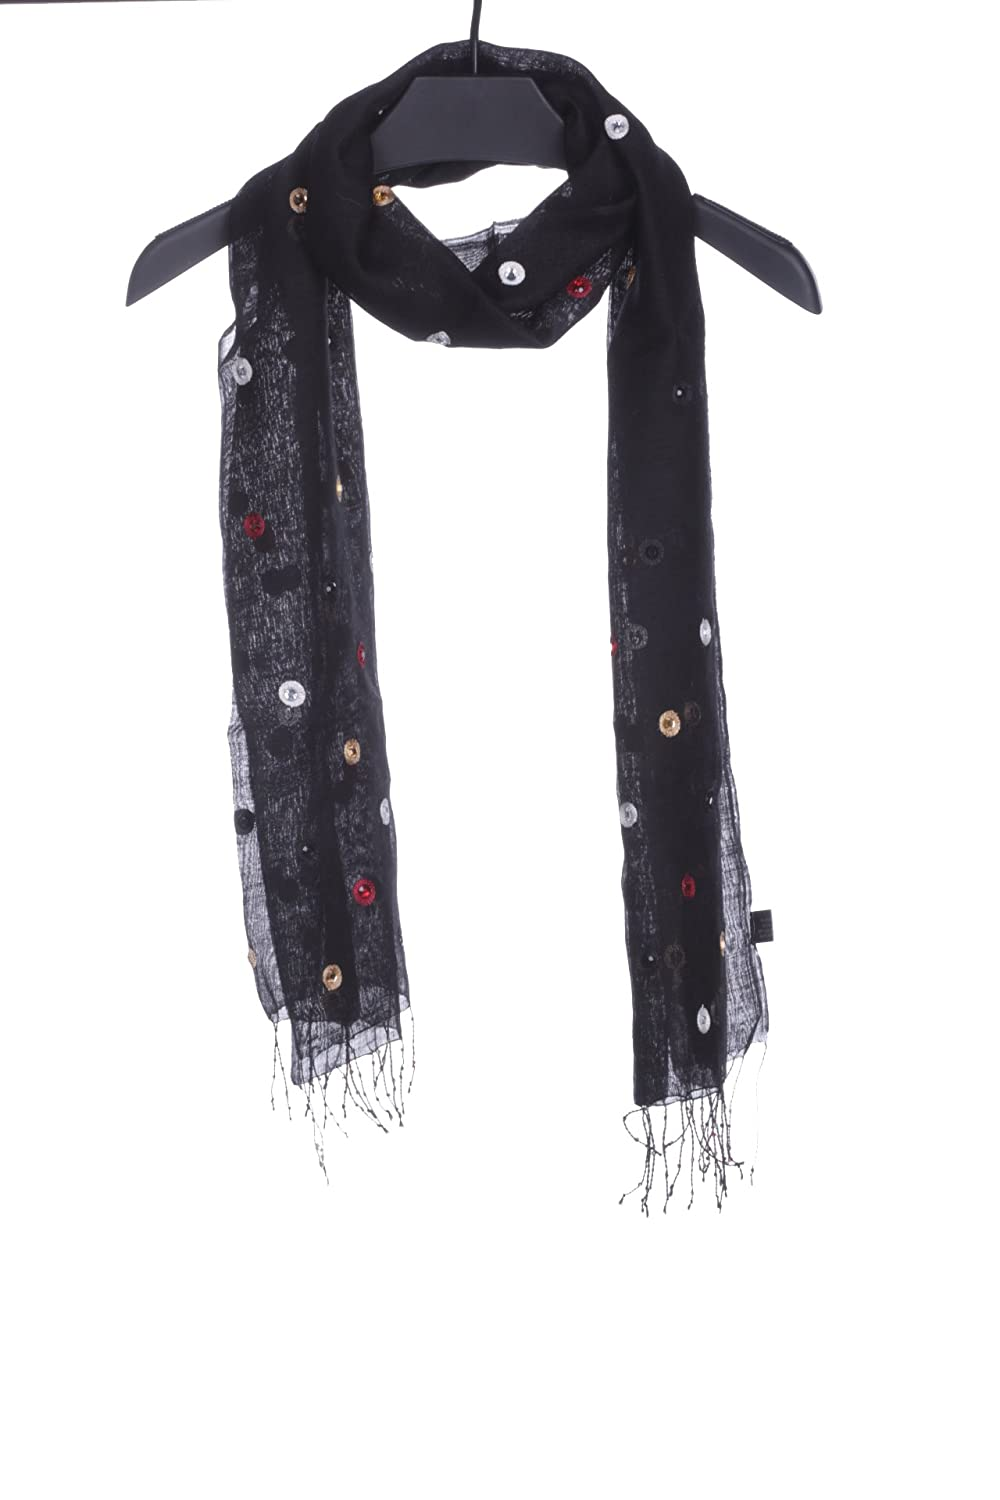 2016 new India Wind blended dyed hand-beaded scarf